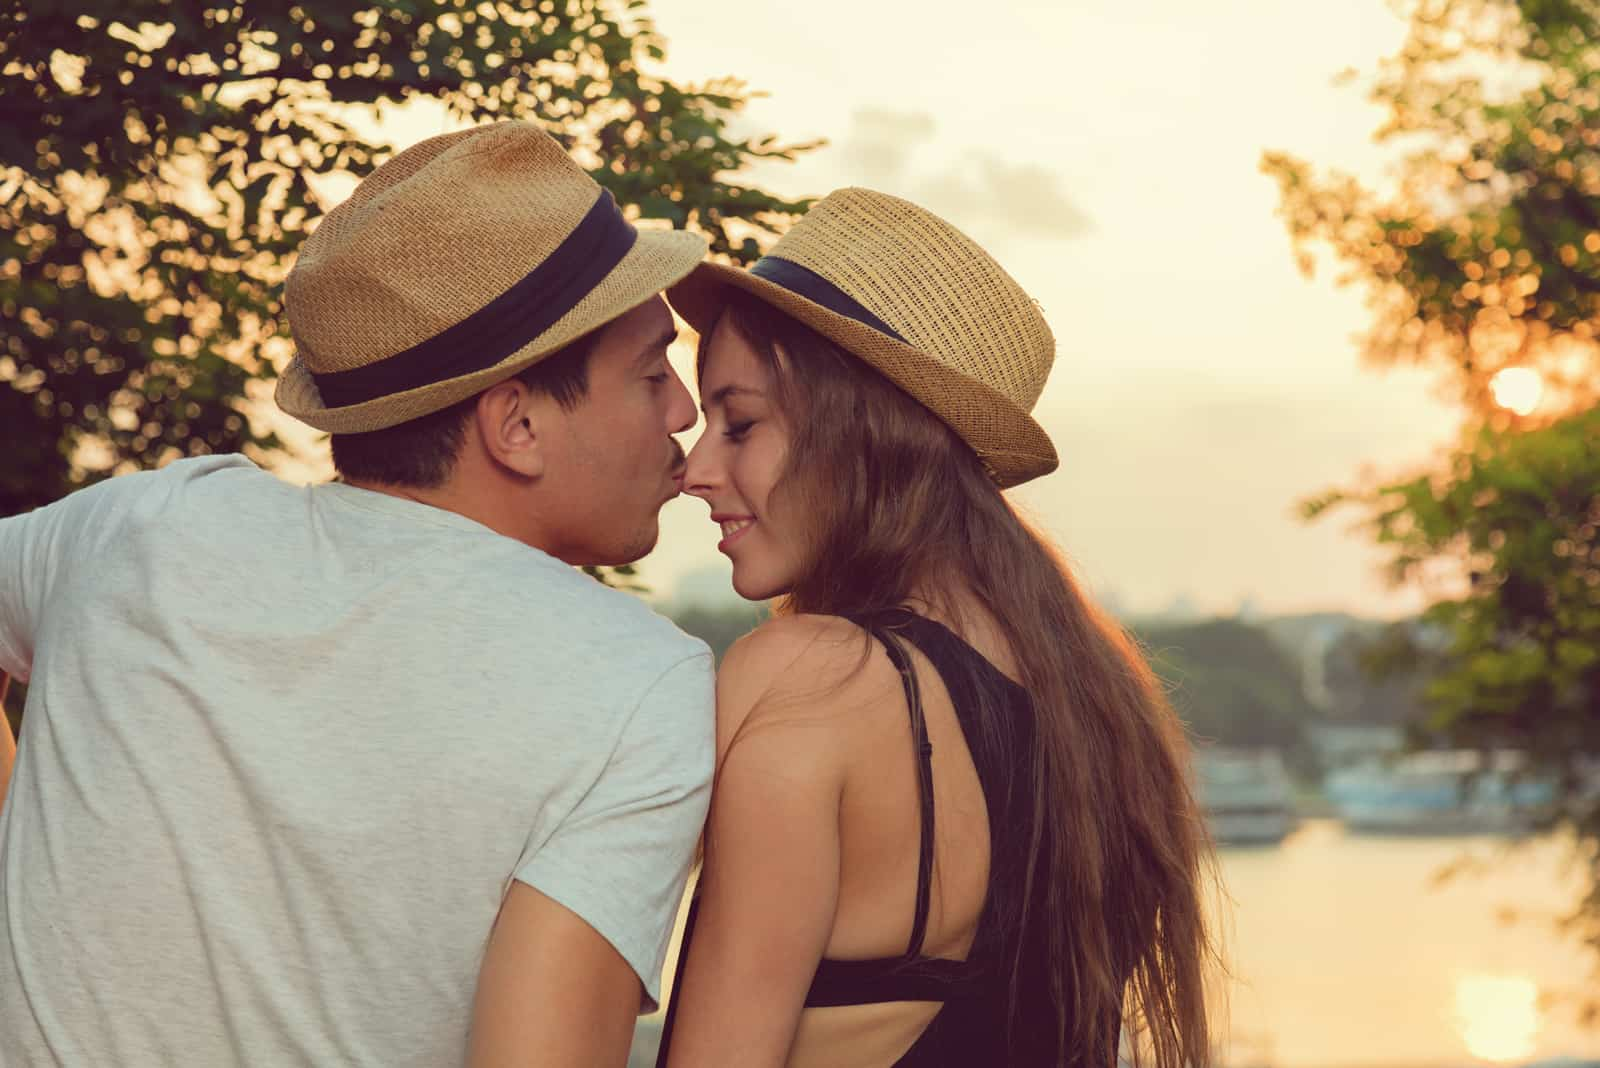 a man kisses a woman on the nose as they sit